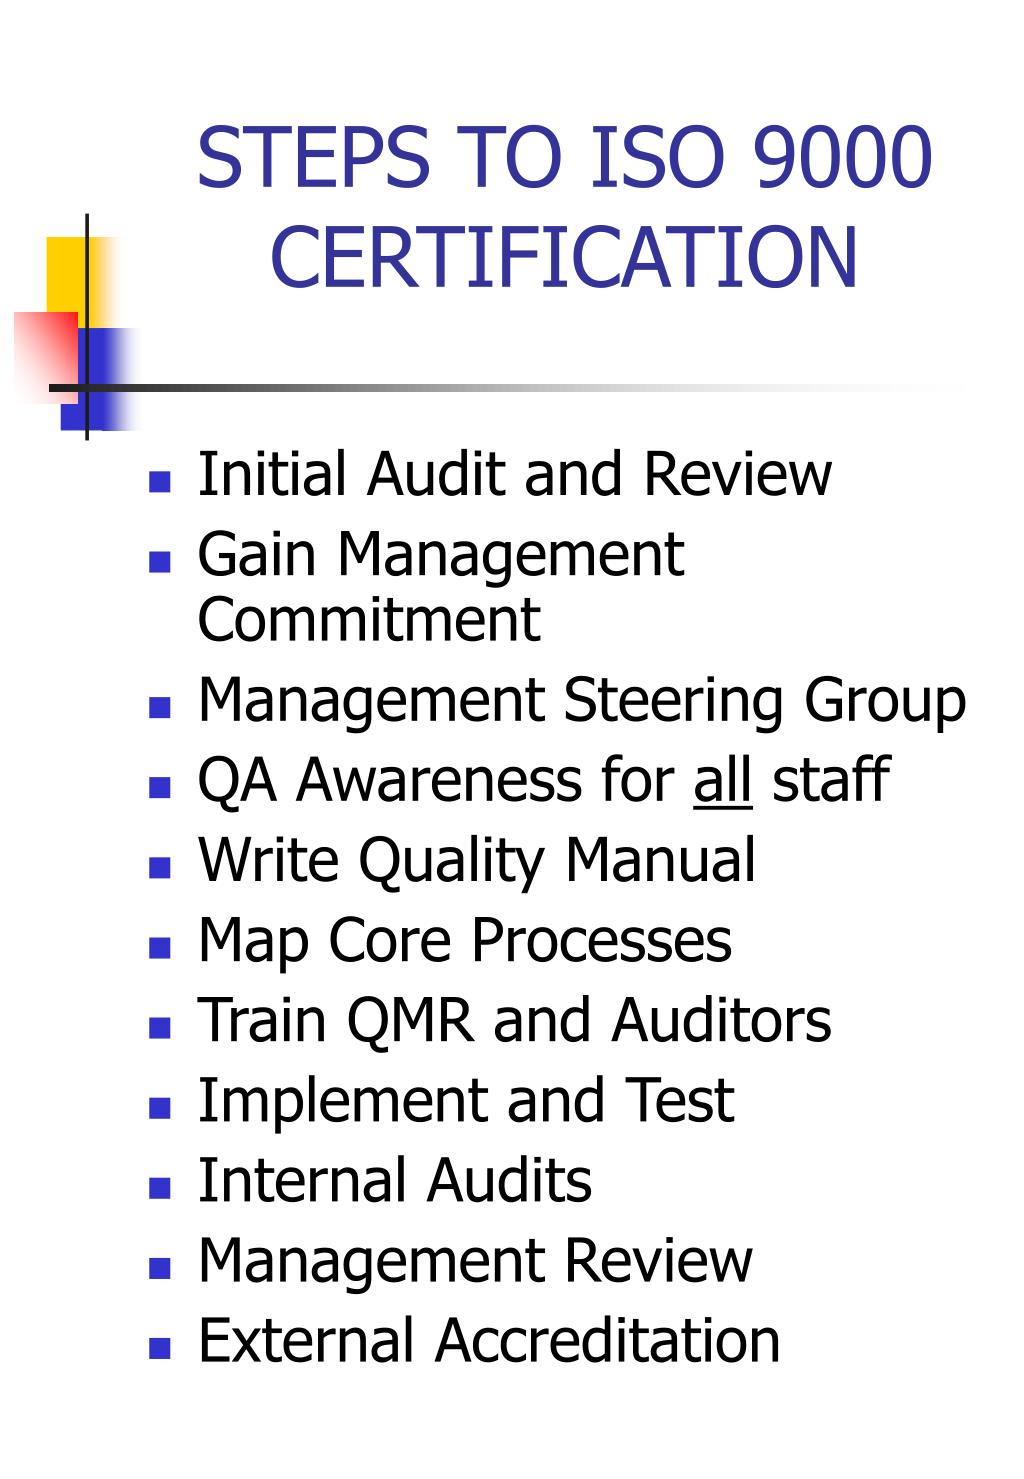 STEPS TO ISO 9000